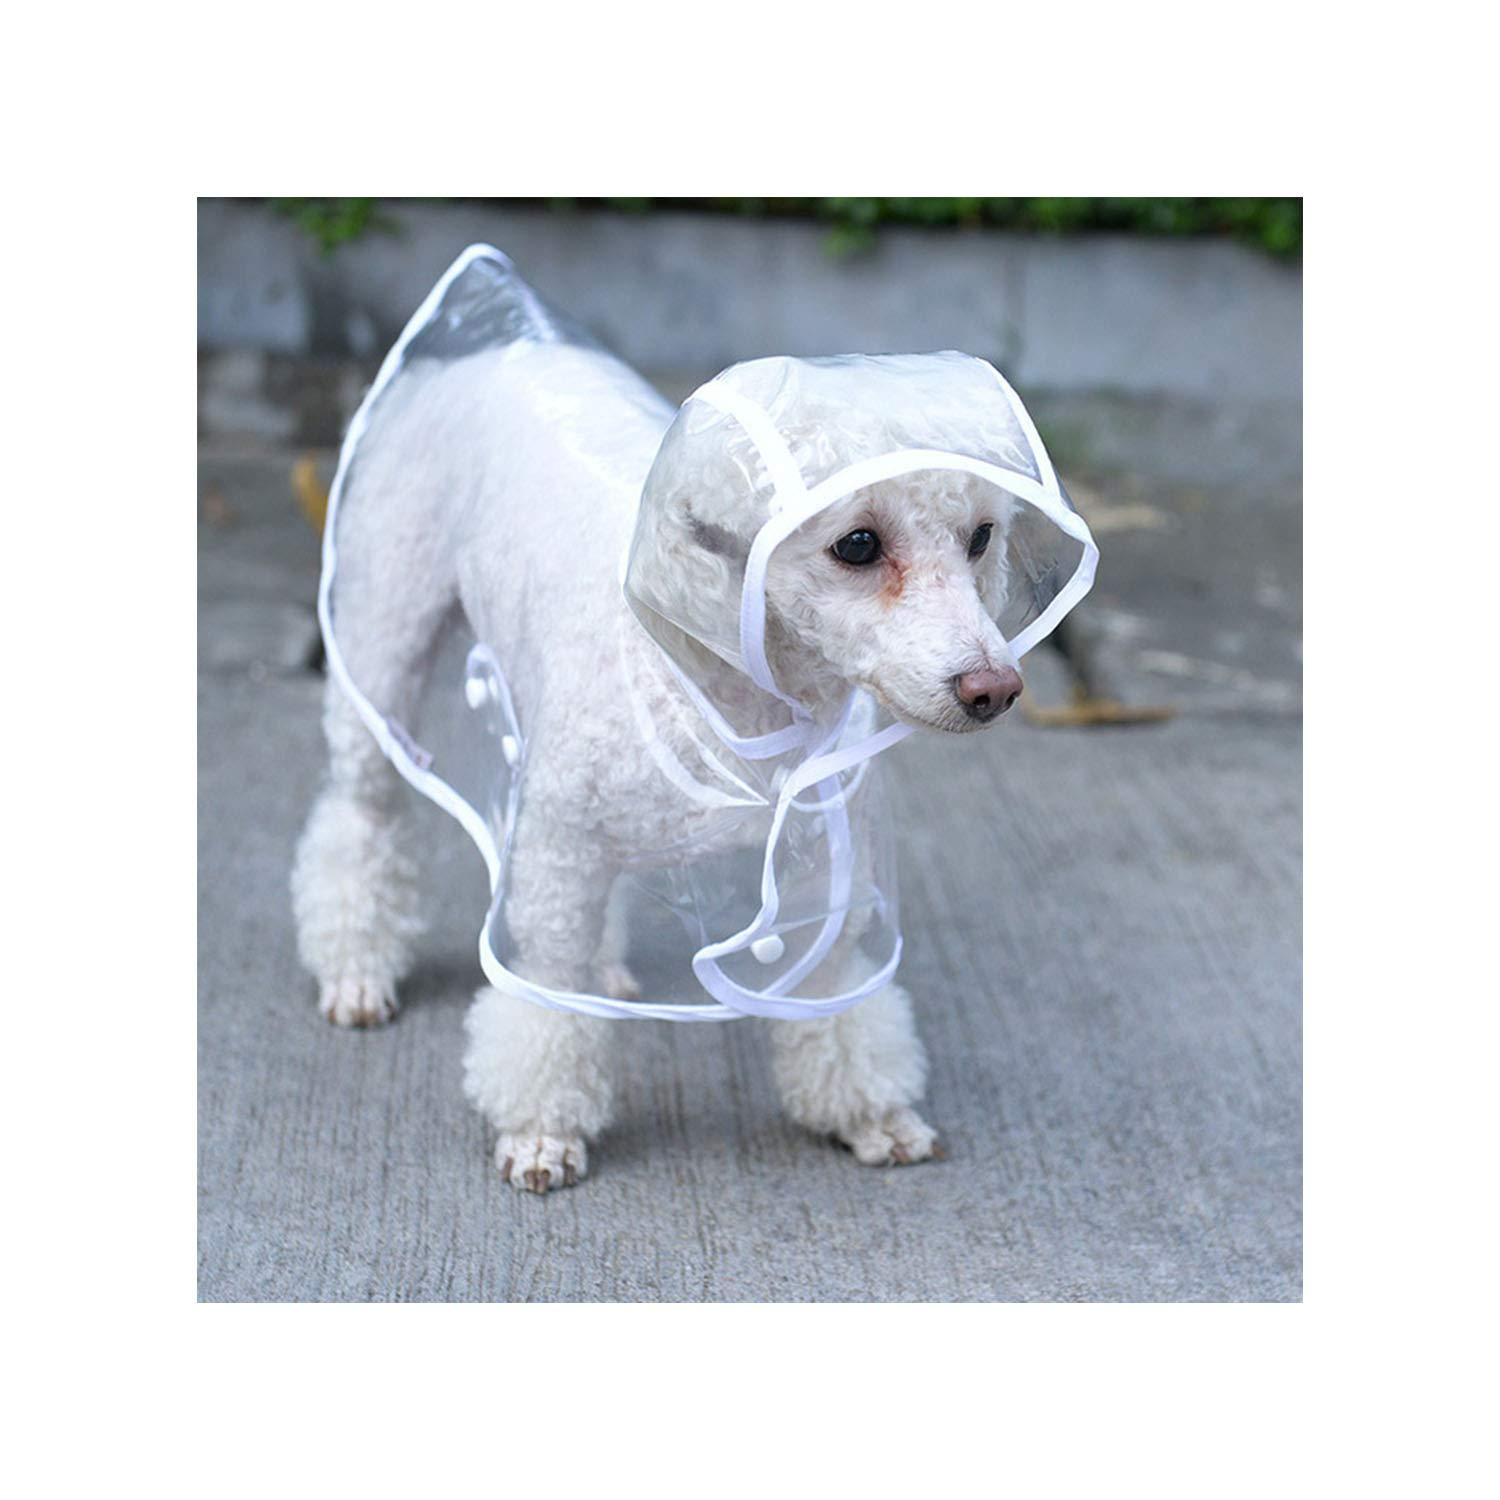 Amazon Com Hey Warm Home Waterproof Dog Clothes Raincoat Transparent Rain Coat Pet Dog Clothes Small Dogs Chihuahua Clothing White L Kitchen Dining